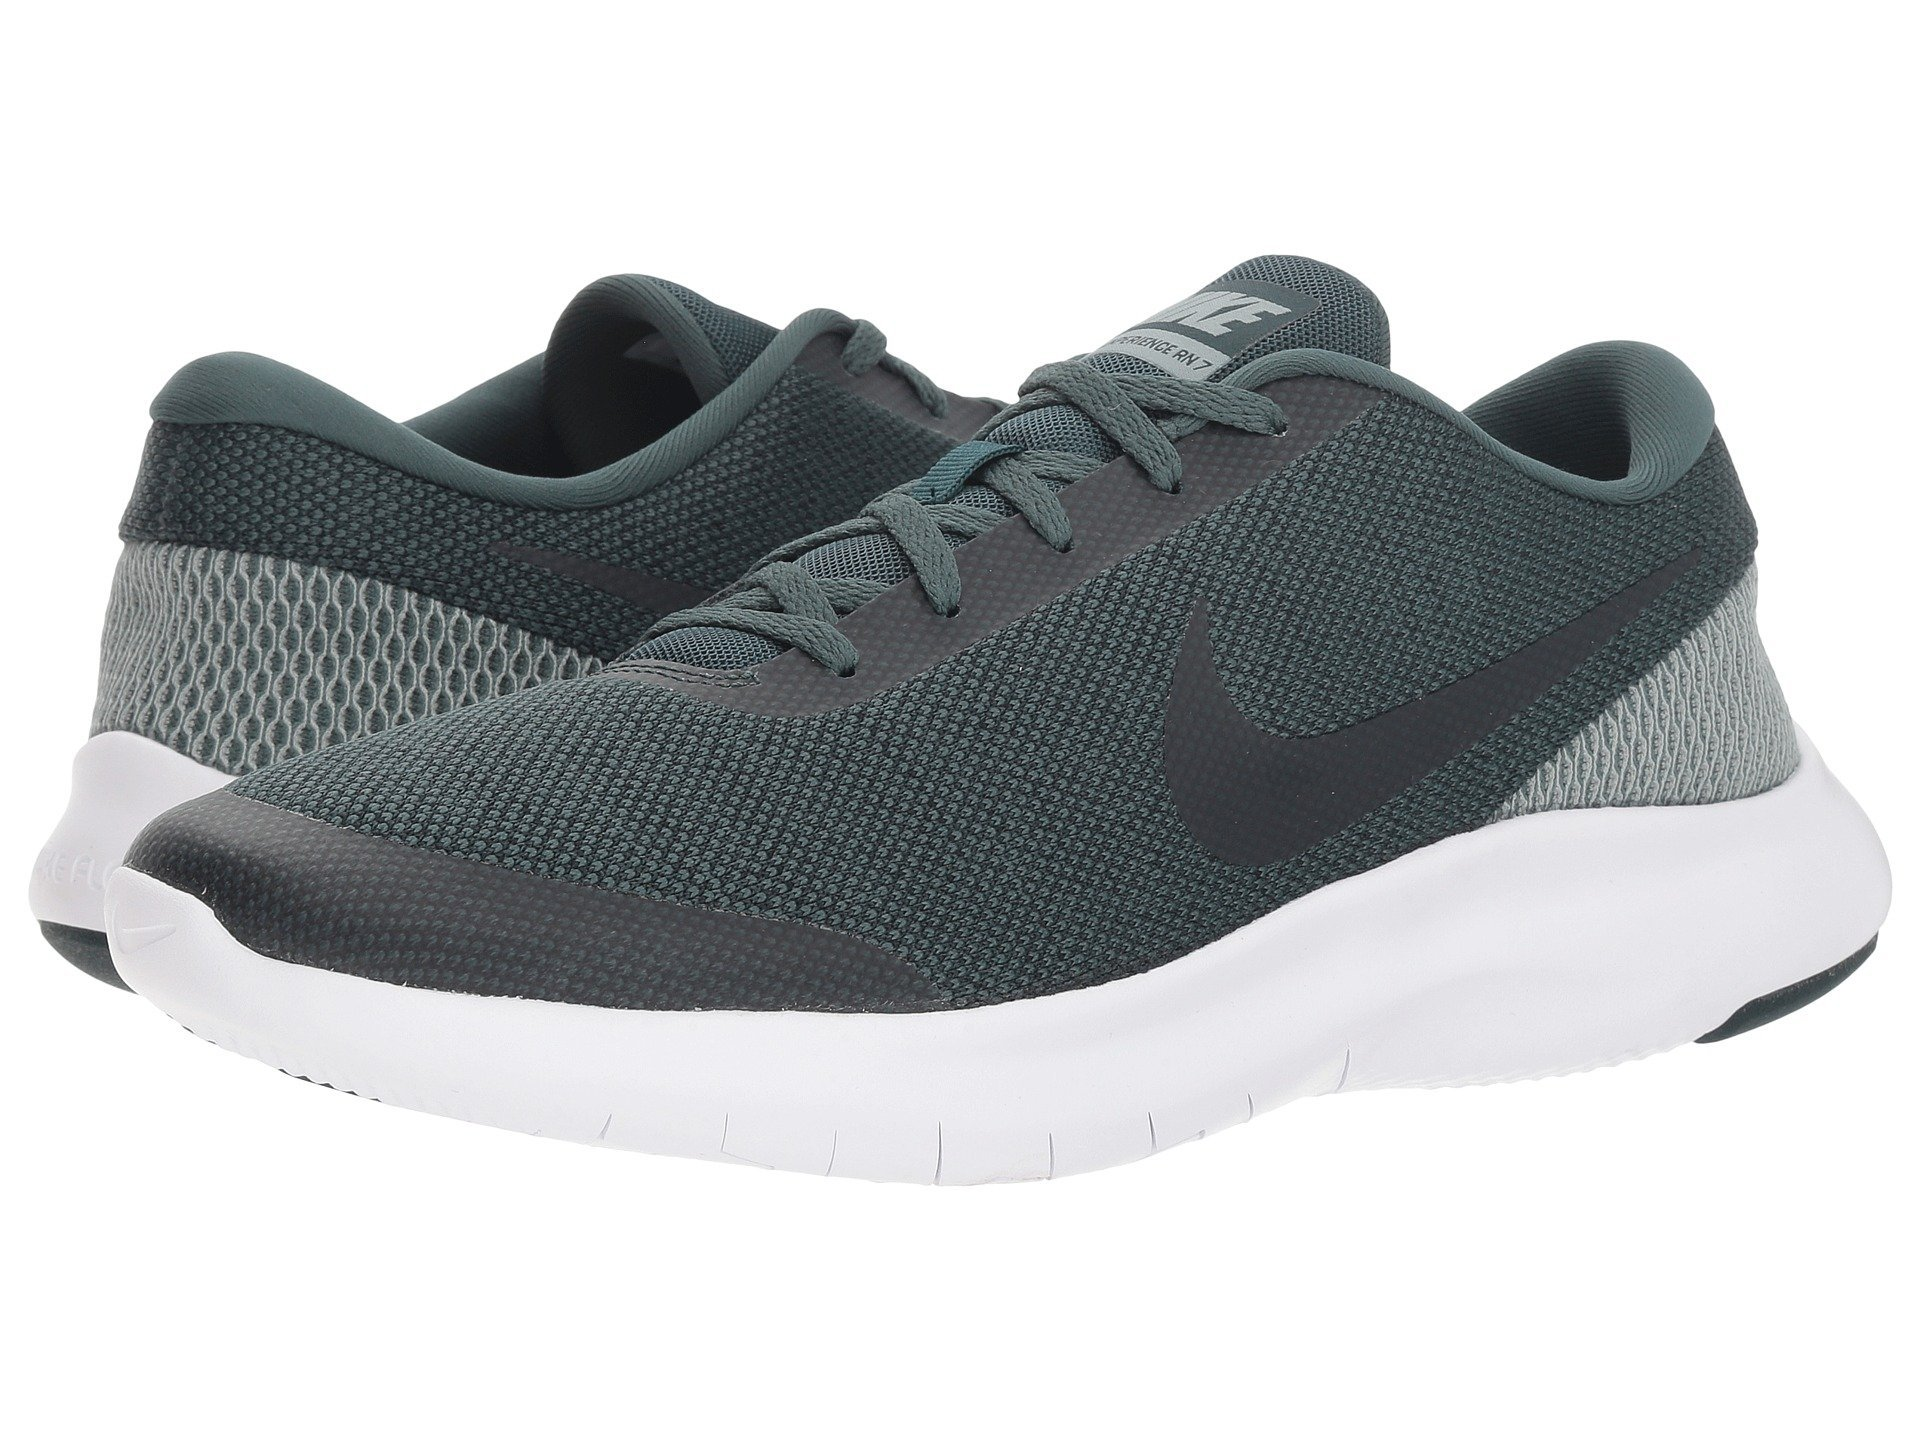 4a20f4527a5 Galleon - NIKE Flex Experience Rn 7 Mens Style  908985-301 Size  13